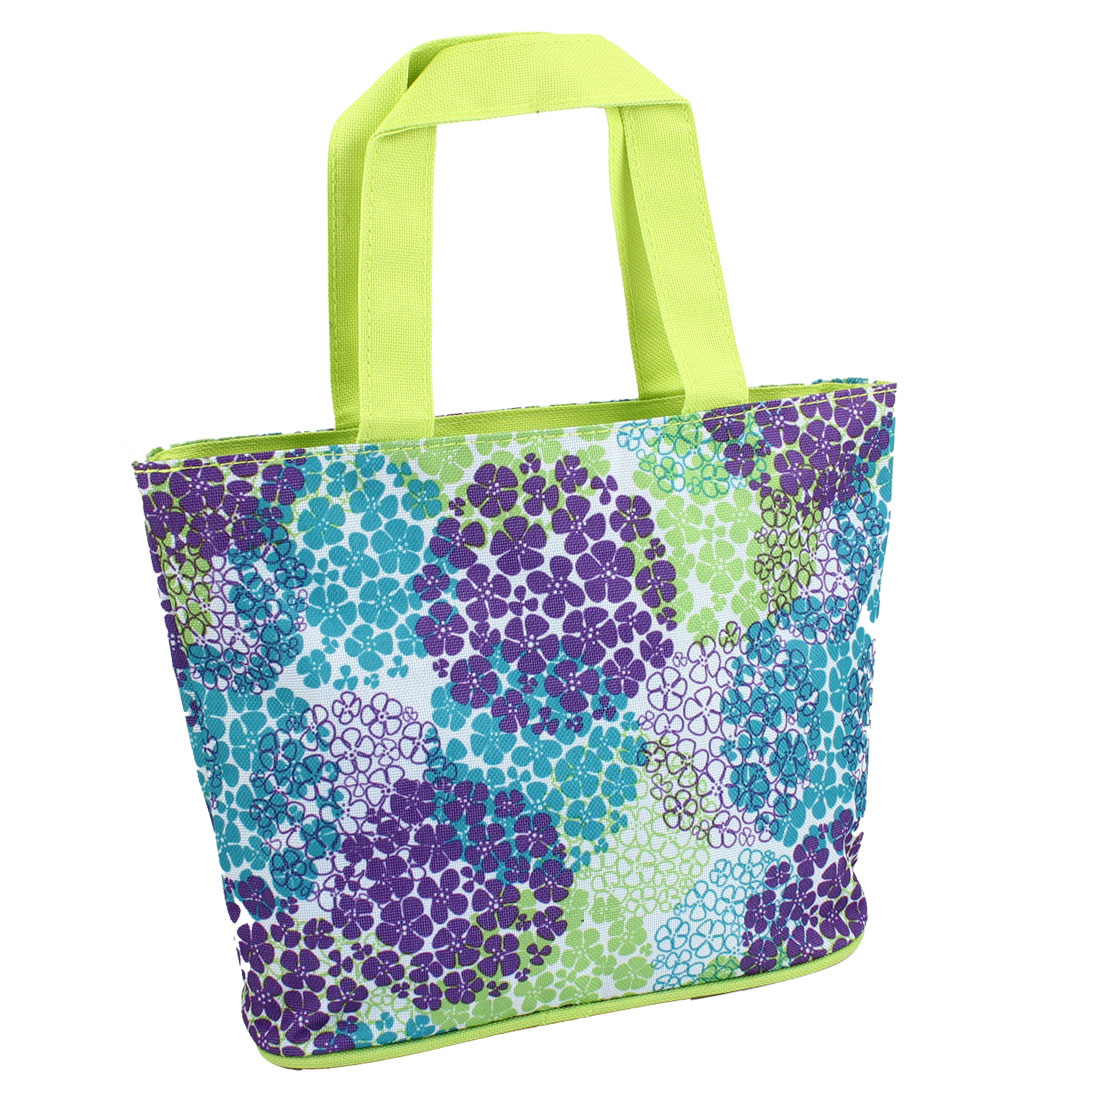 Zippered Folding Flower Prints Shopping Hand Bag Handbag Tote Yellow Green